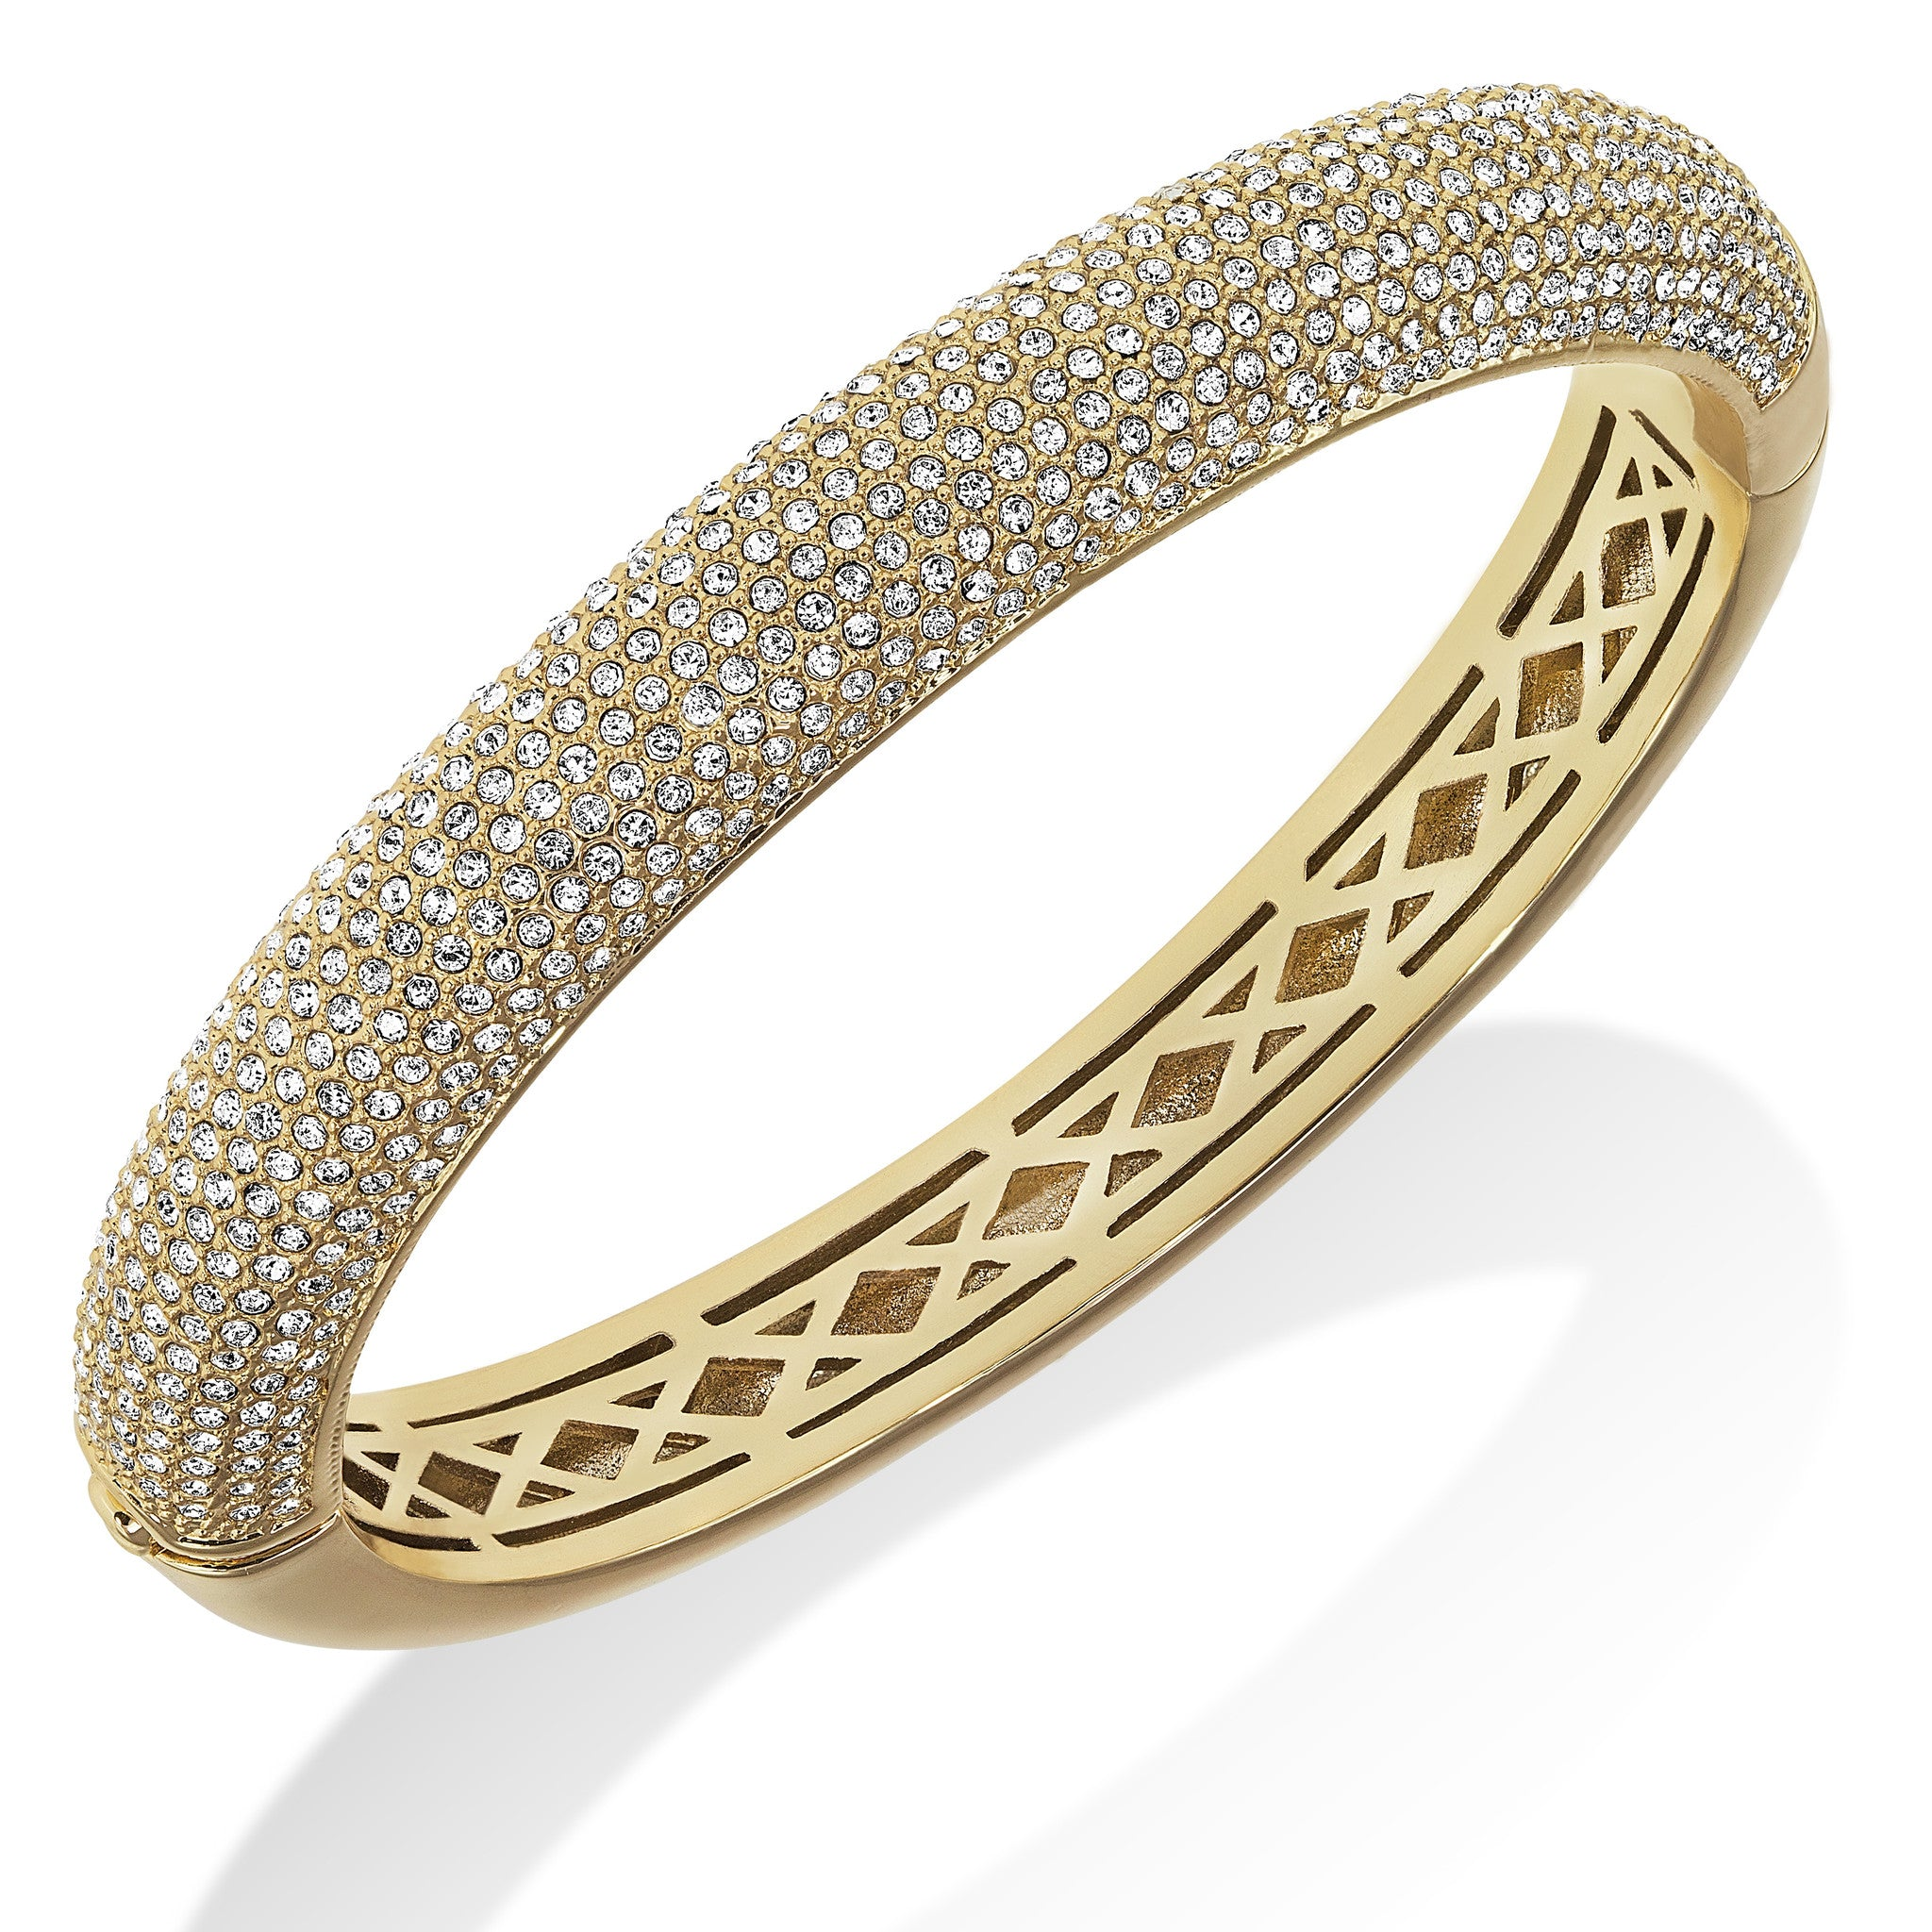 shape hinged bangle bangles bracelet a with concealed solid yellow clasp gold oval